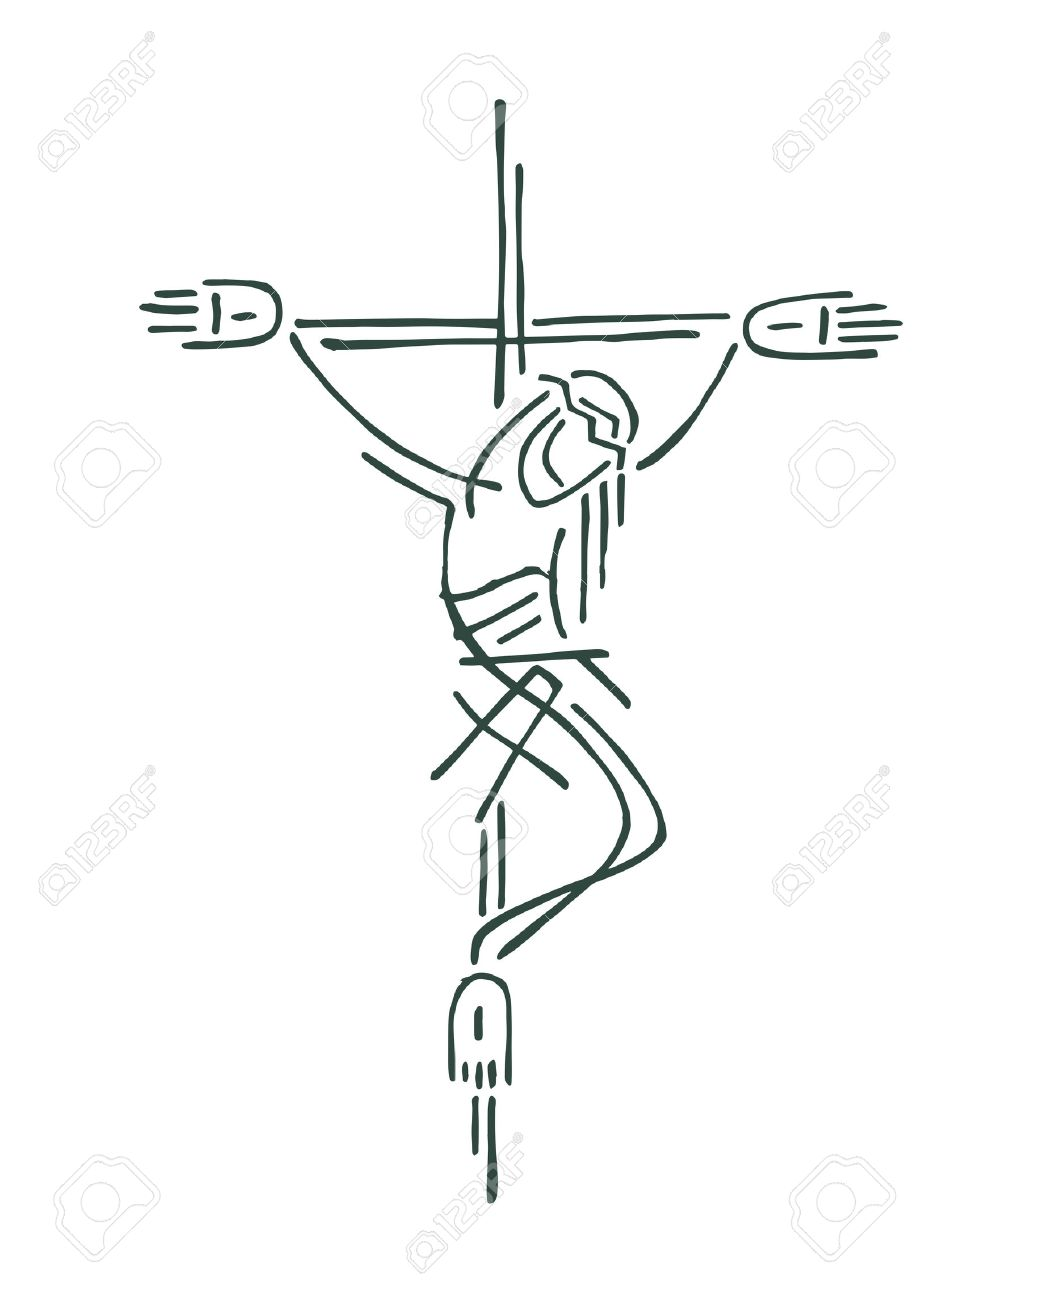 1040x1300 Hand Drawn Vector Illustration Or Drawing Of Jesus On The Cross